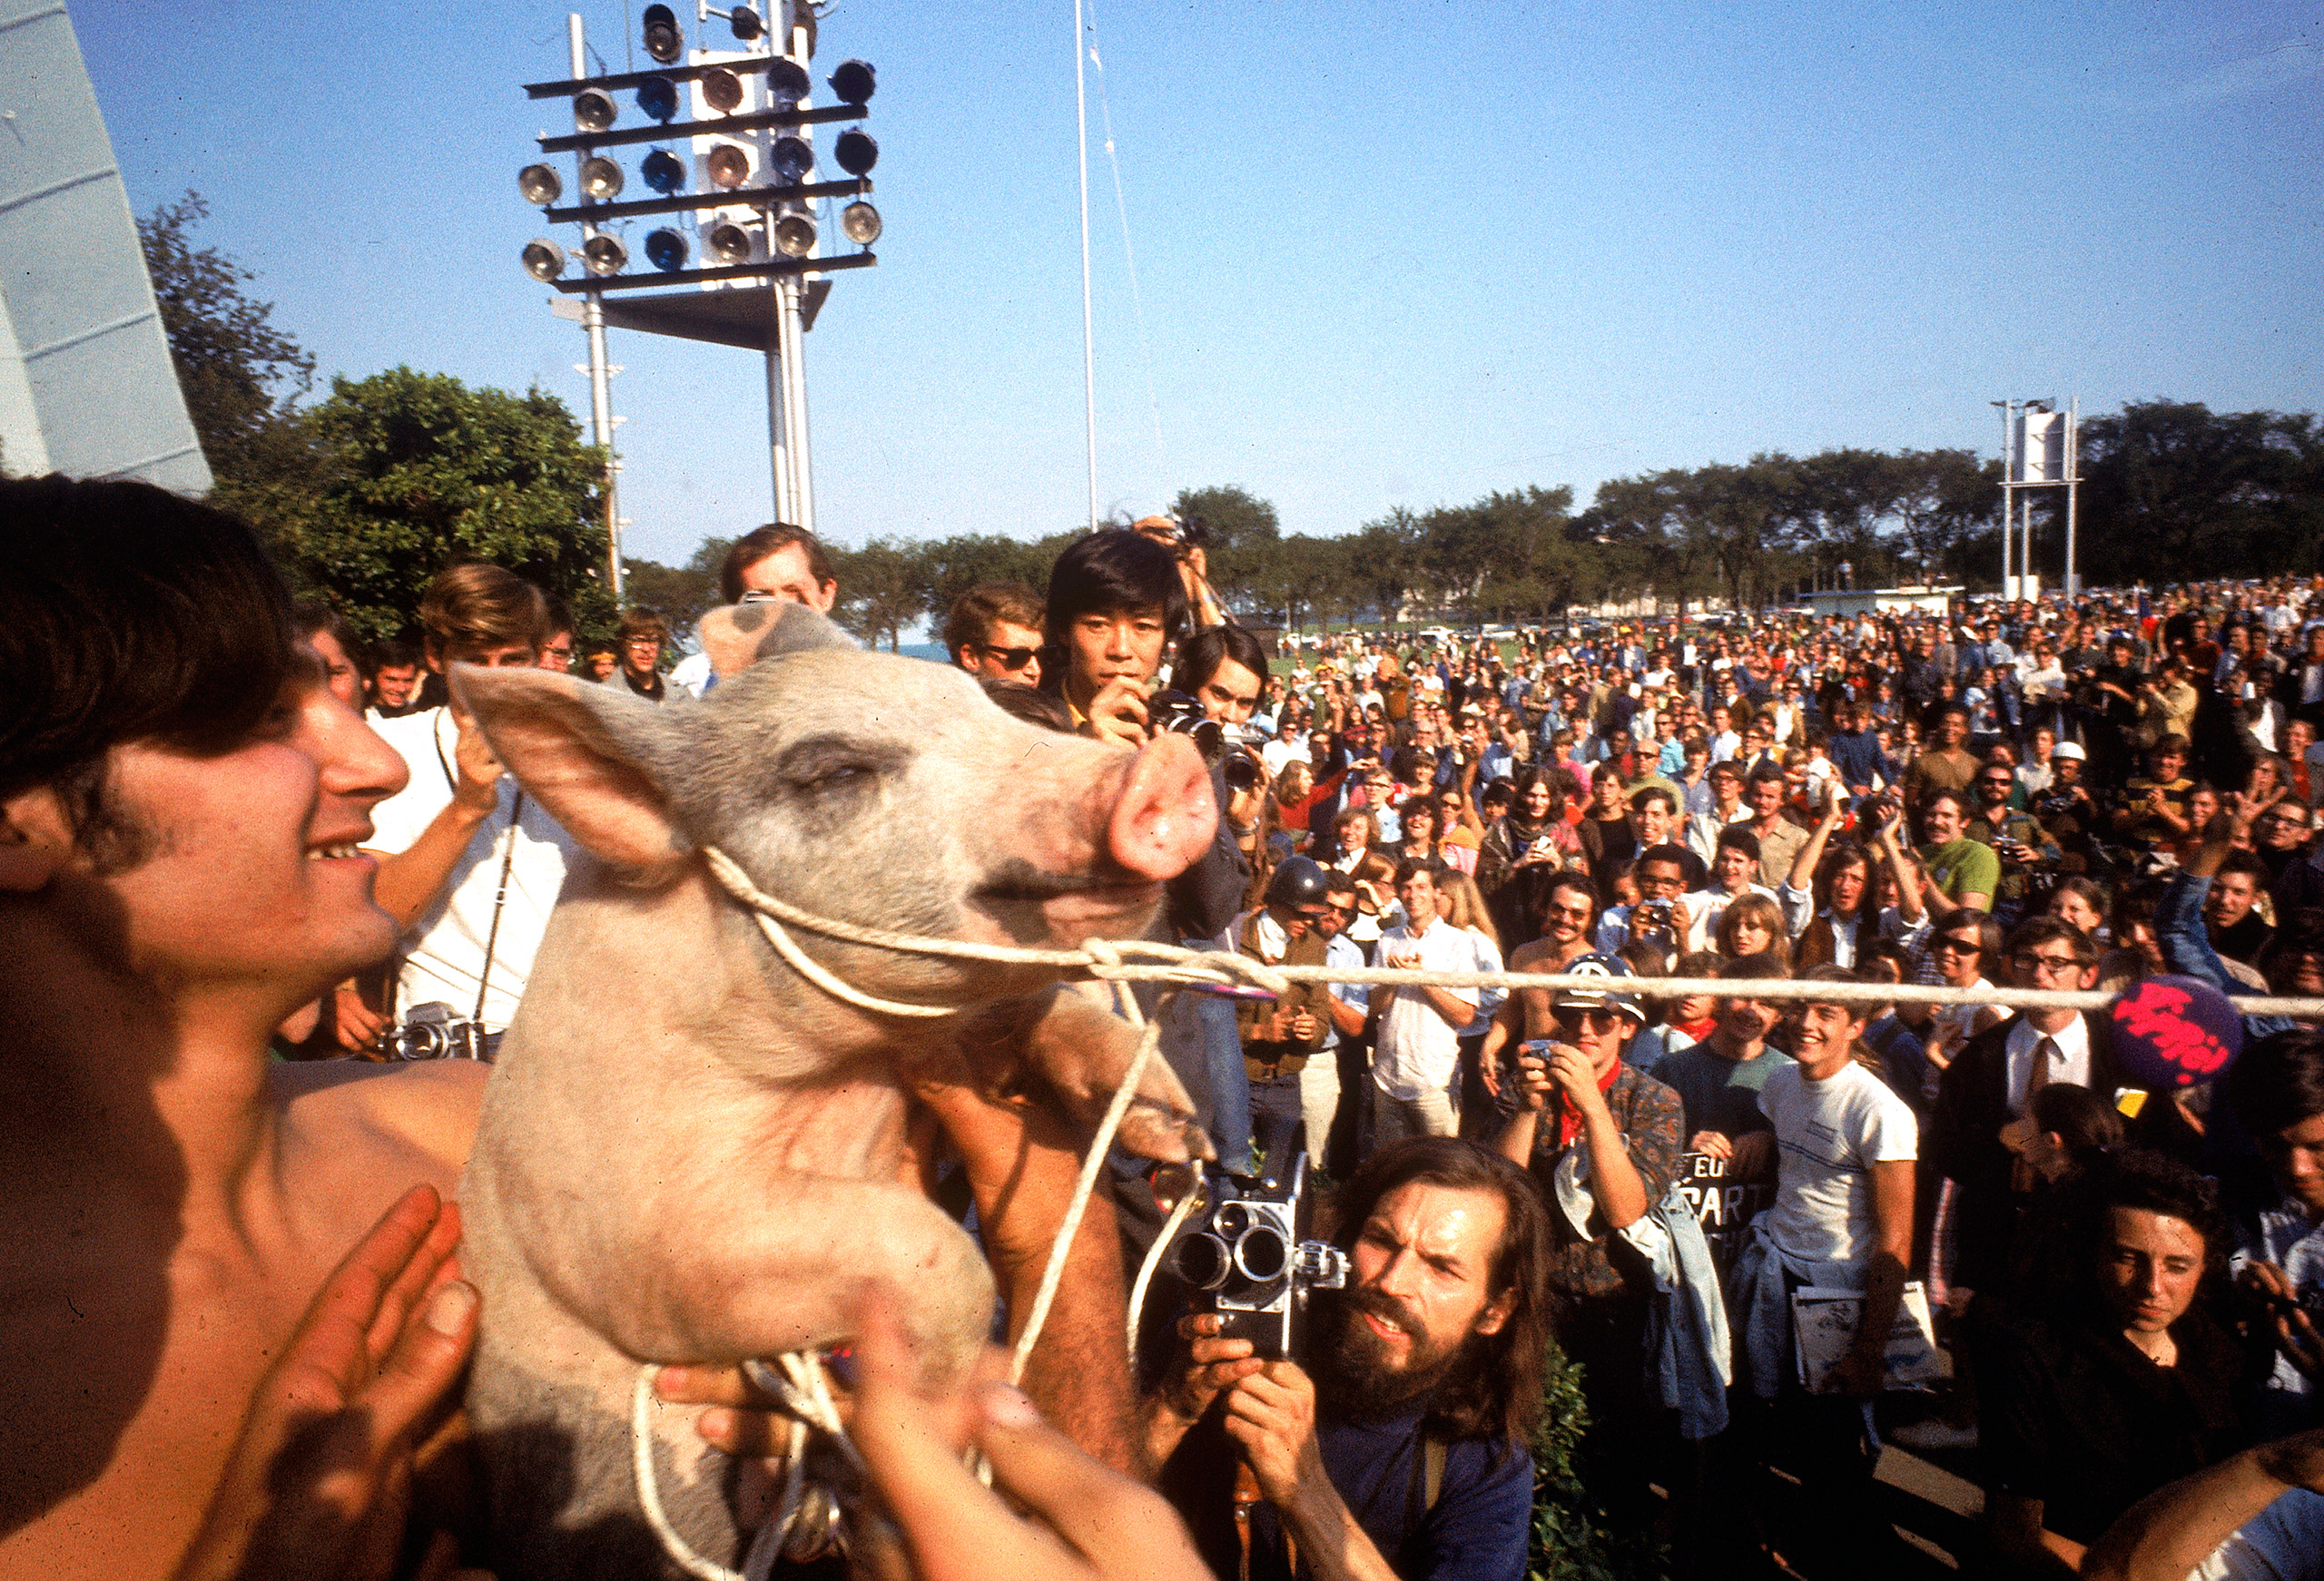 Yippies parading their Presidential candidate, Pigasus the pig, during the 1968 Democratic National Convention.